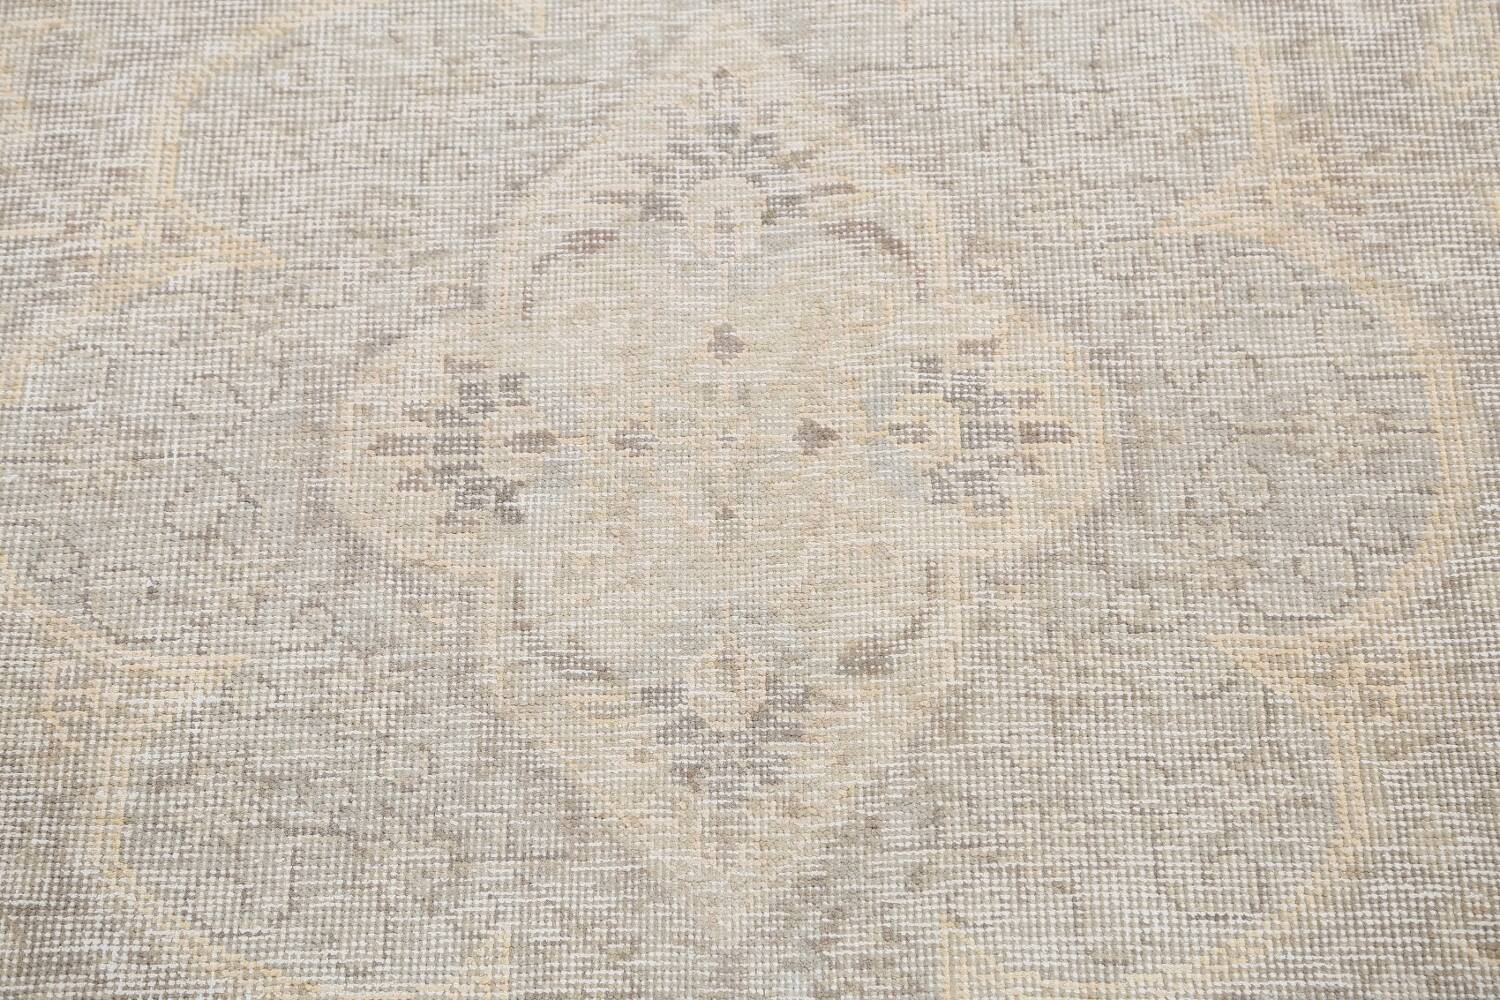 Antique Muted Distressed Tabriz Persian Area Rug 10x12 image 11